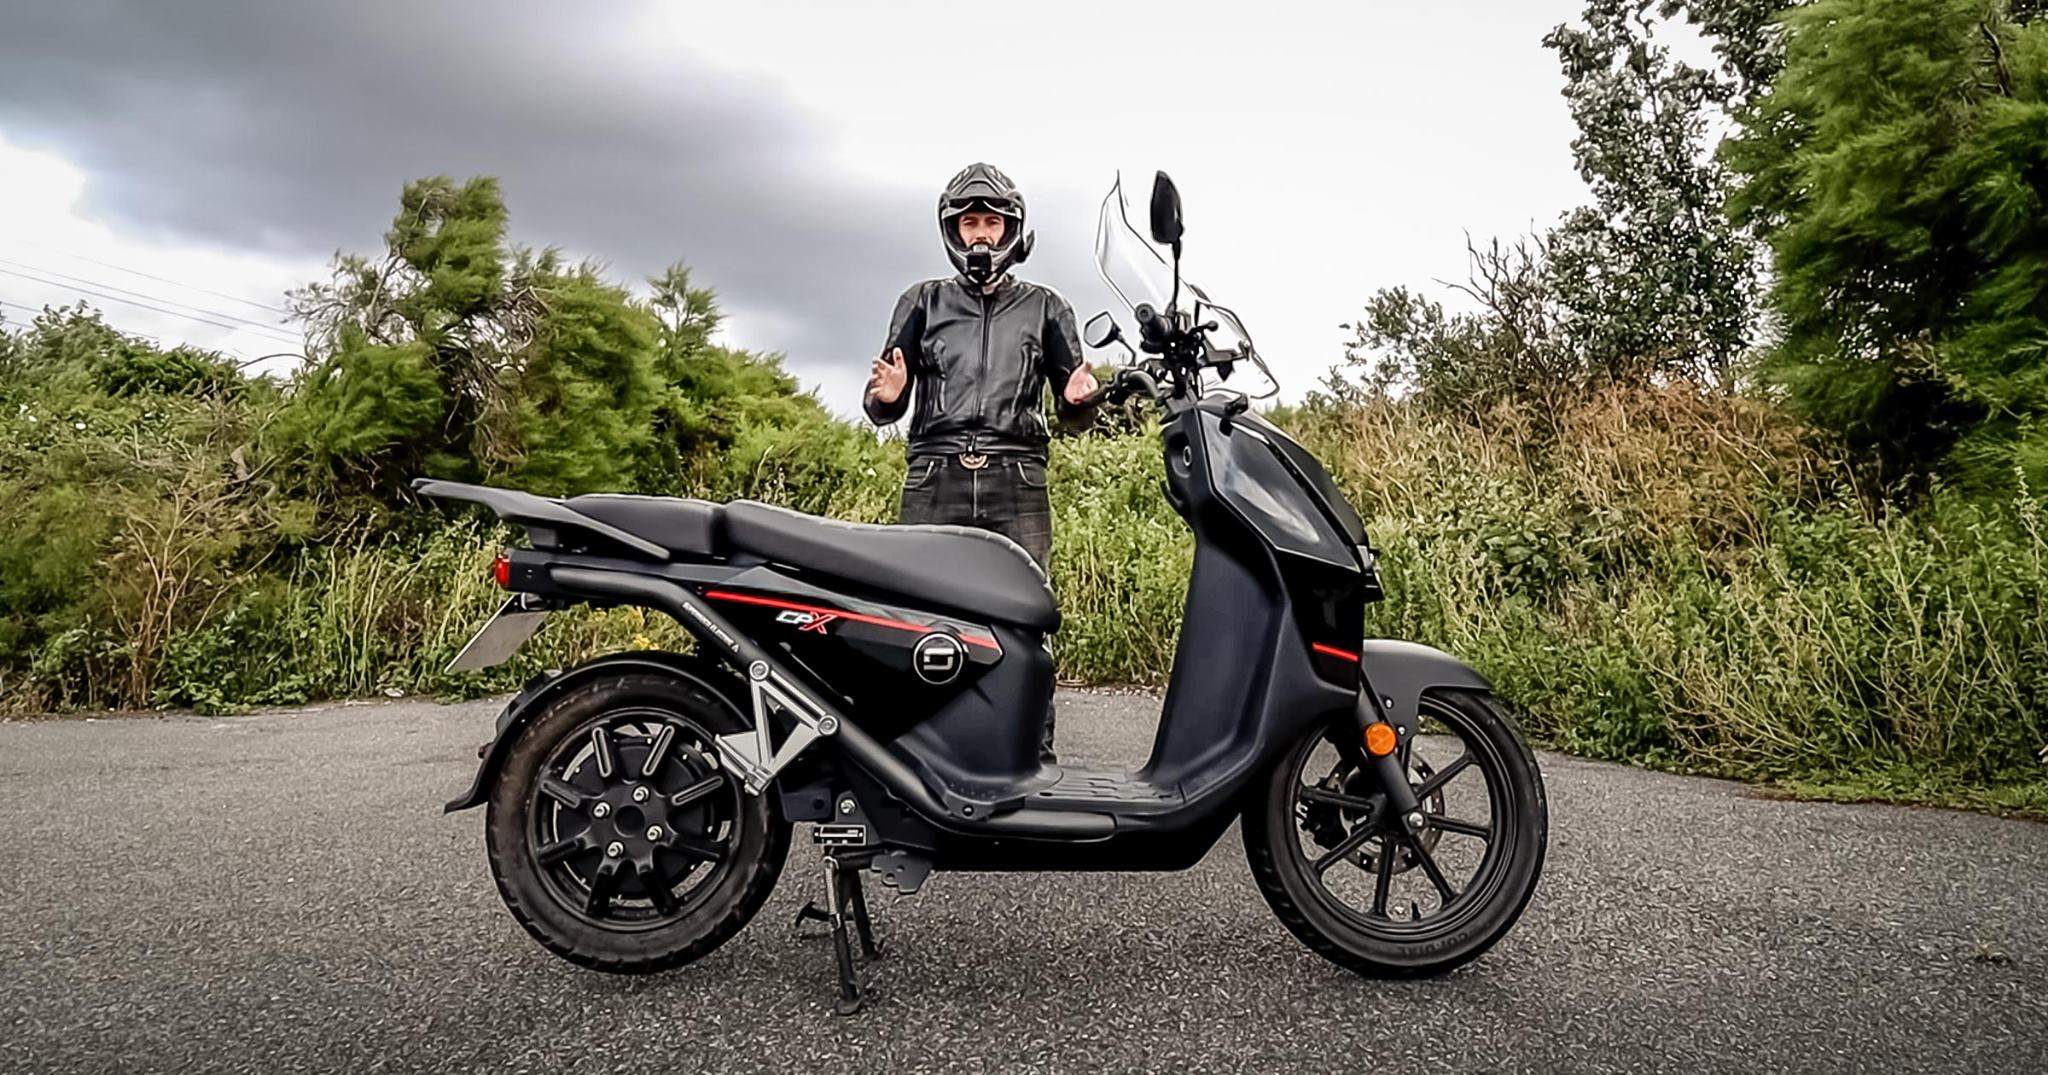 Spicy110 reviewing the Super Soco CPx electric scooter